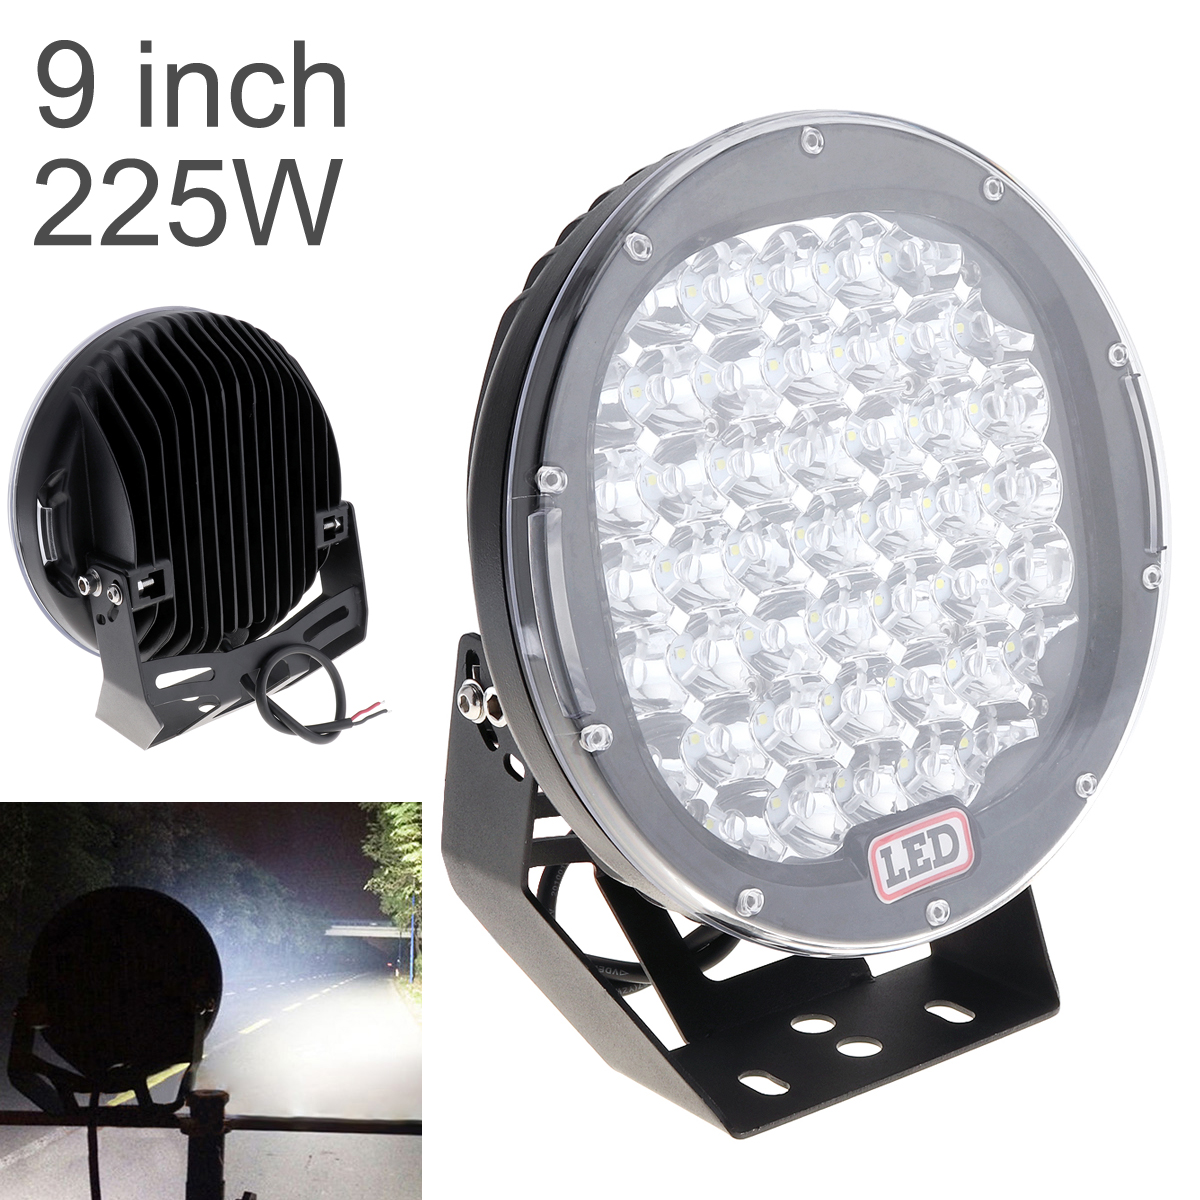 Round LED Spotlights 225W 45x  LED  Car Light Bar As Worklight Spot Light For Boating Fishing SUV Spotlight LED Lights-in Car Headlight Bulbs(LED) from Automobiles & Motorcycles